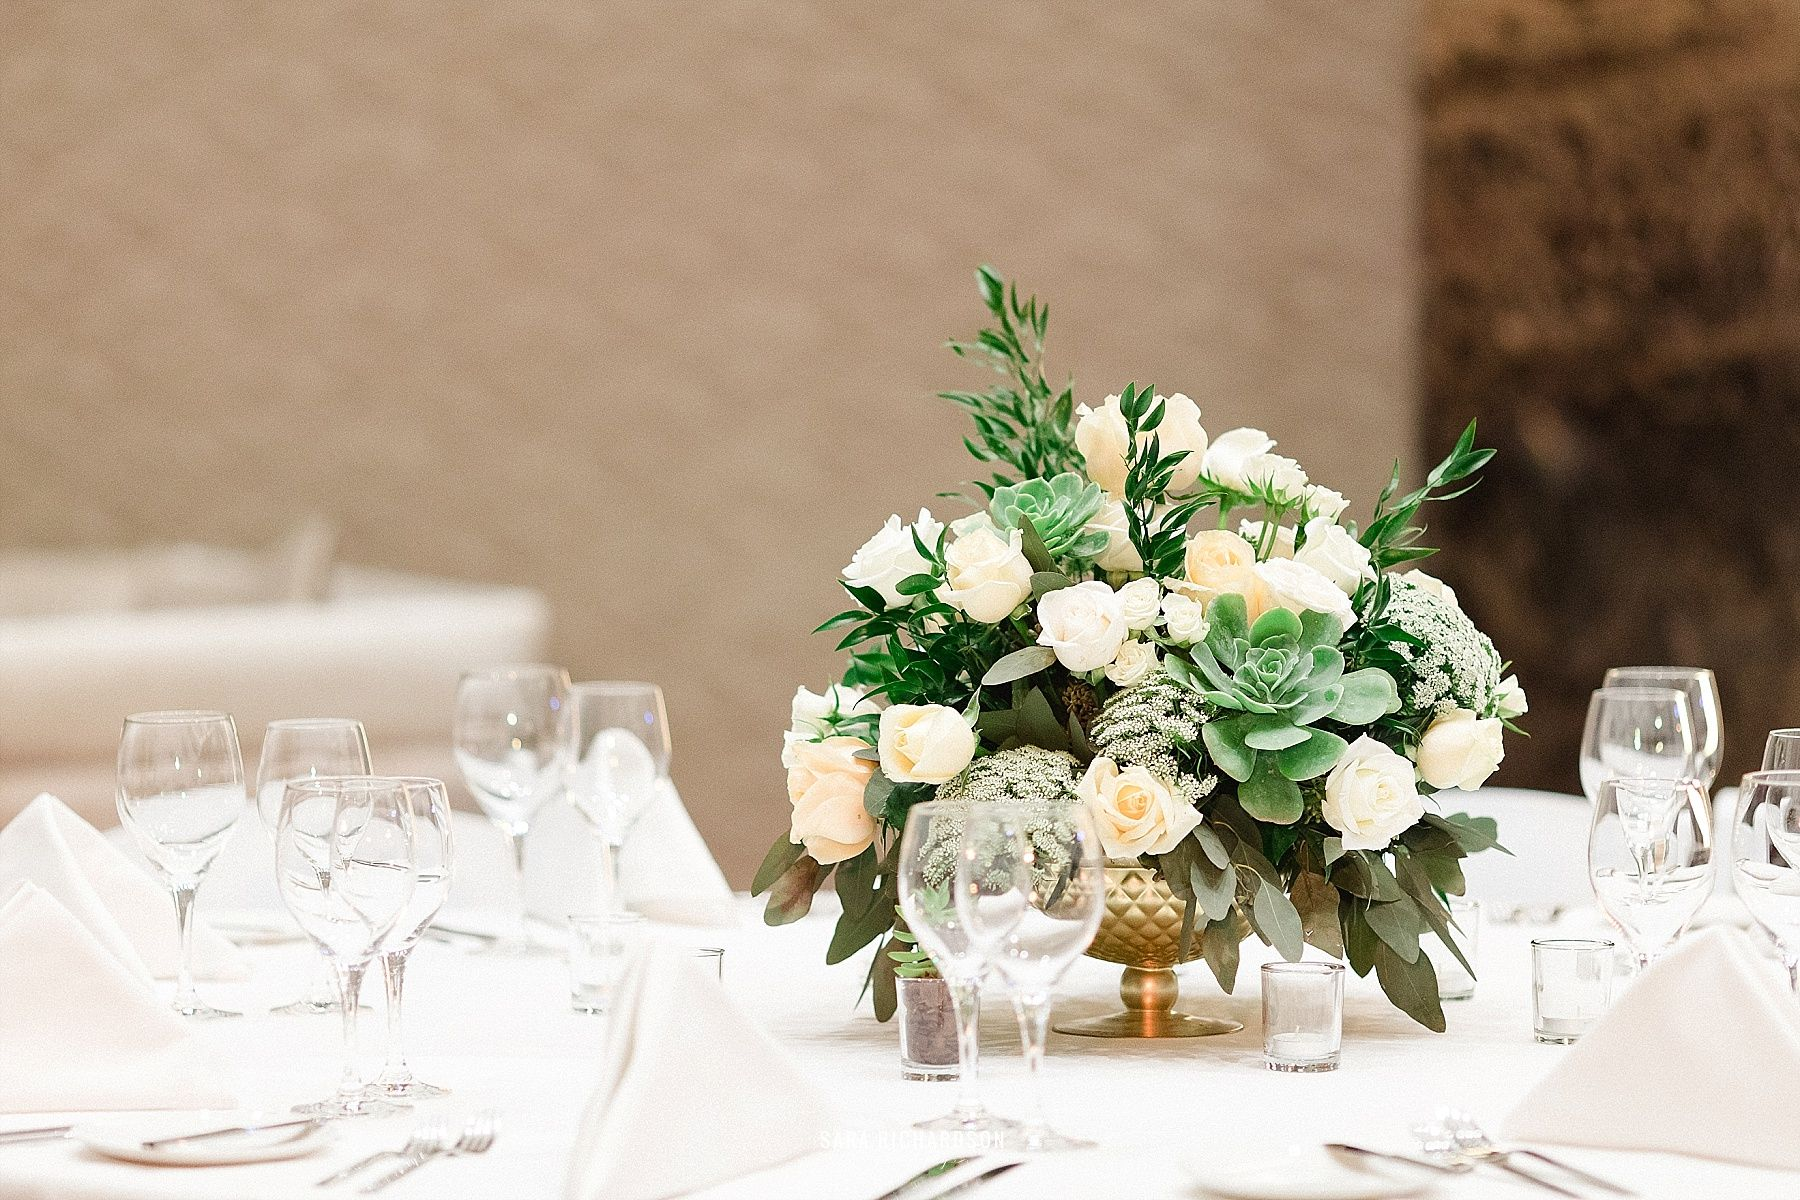 Flower Arrangement on table at LeBlanc in Los Cabos Mexico. Destination Wedding Planning by Cabo Wedding Services.